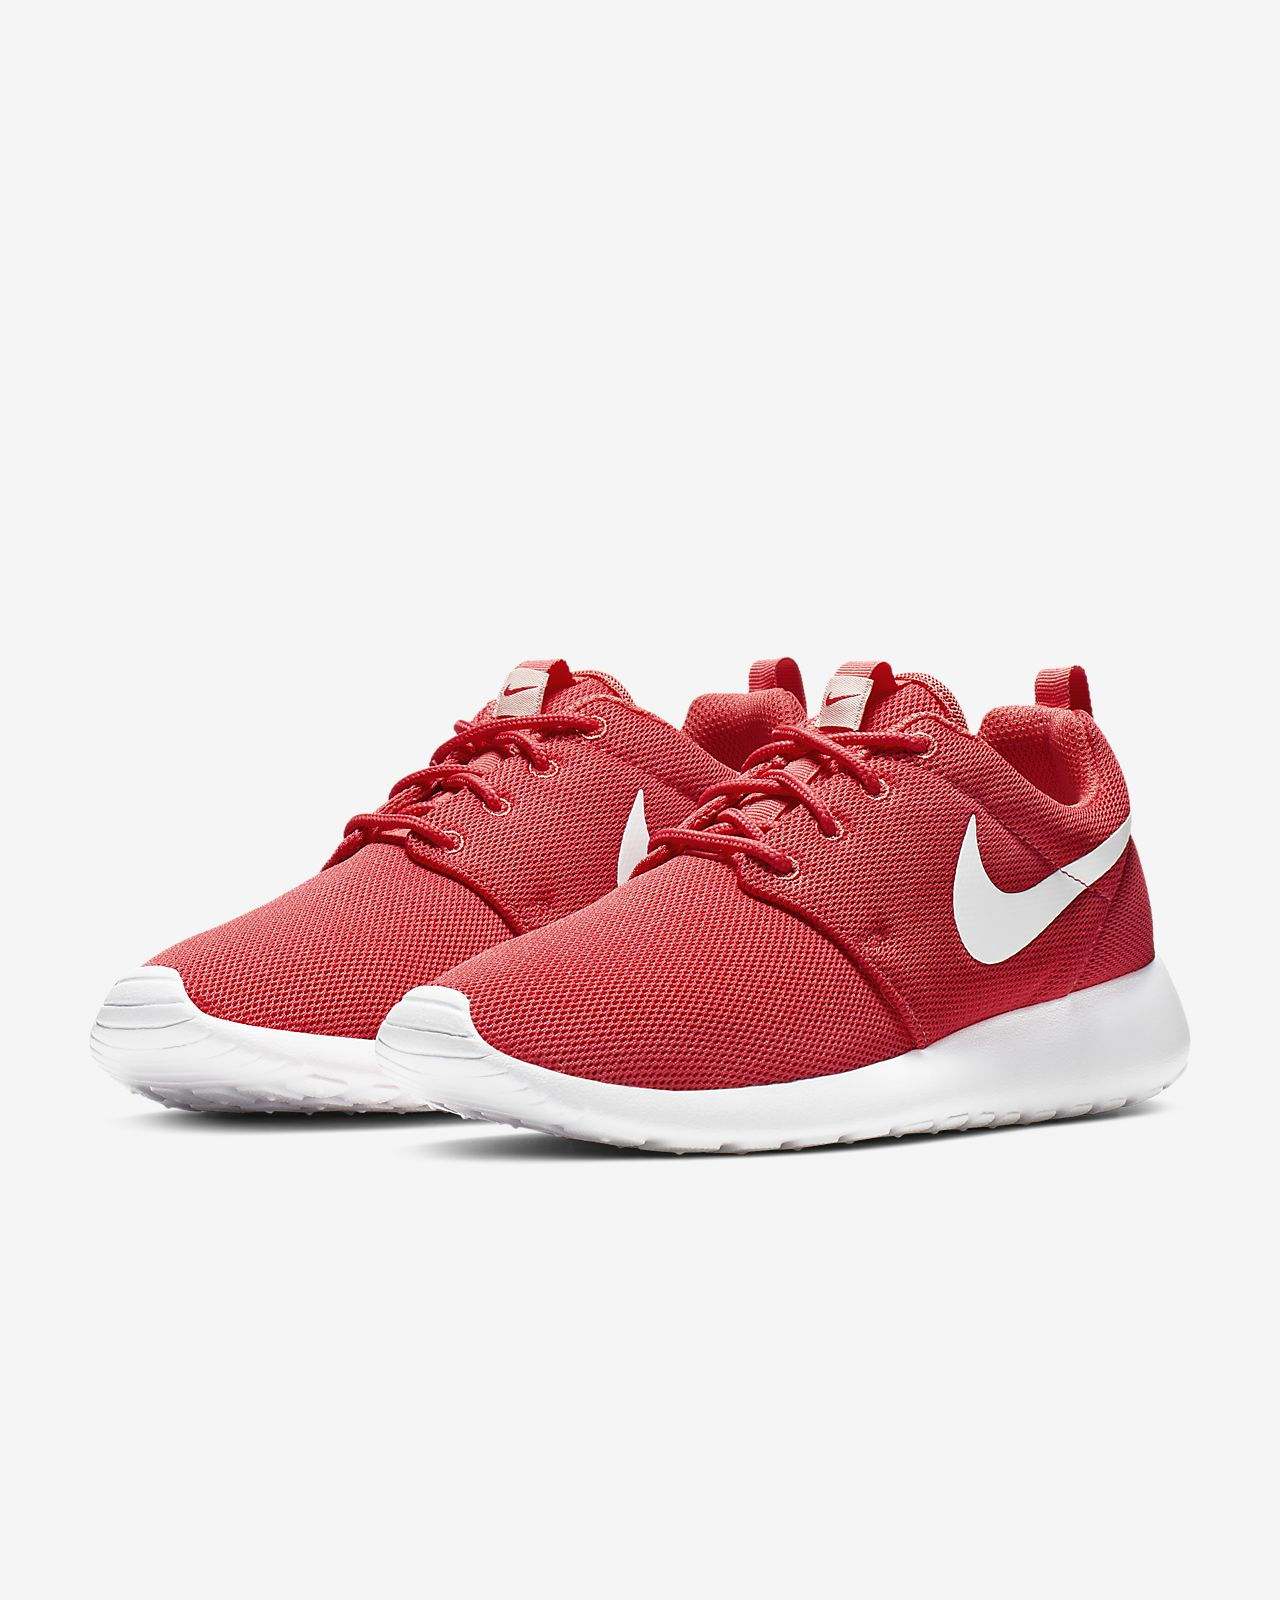 premium selection a710a 90a7b ... Nike Roshe One Women s Shoe